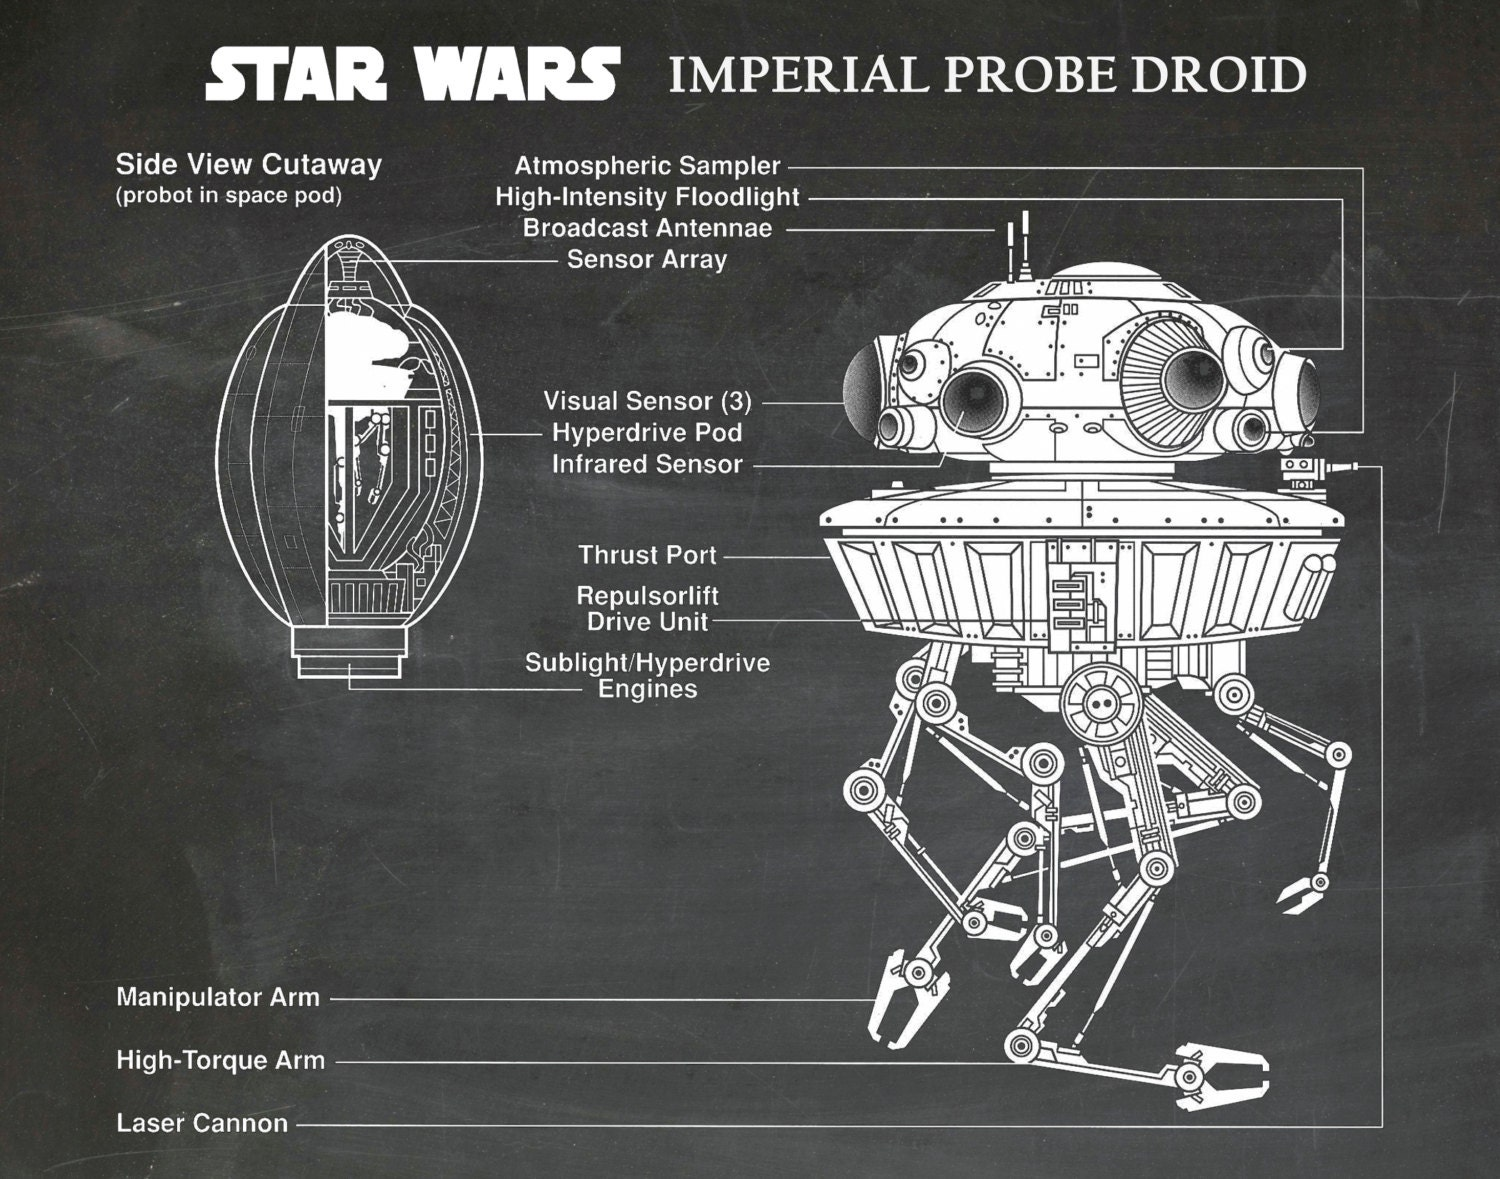 star wars imperial probe droid blueprint - schematic art print wall poster